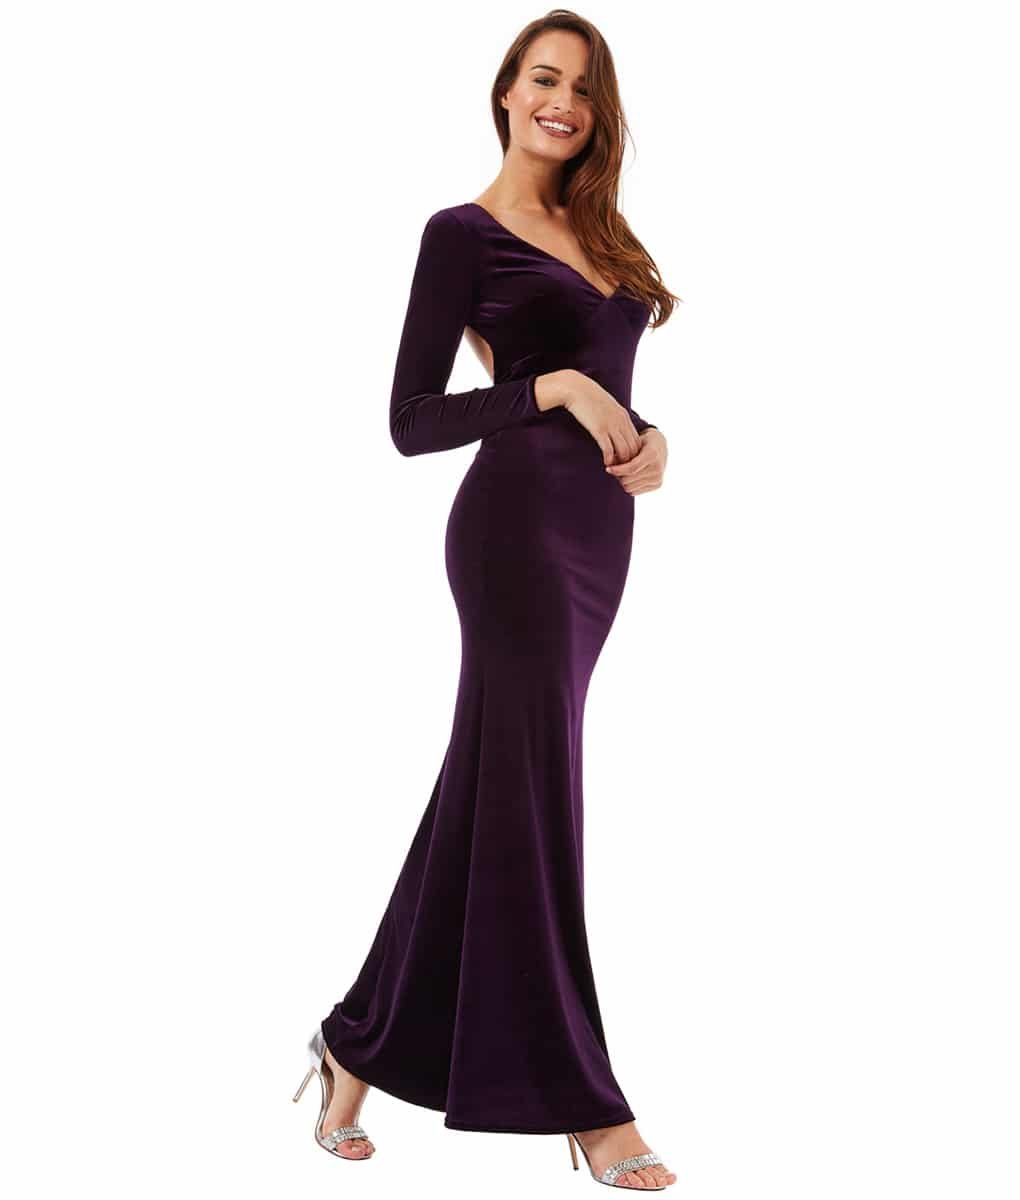 Alila-Plum-Velvet-open-back-gown-City-Goddess